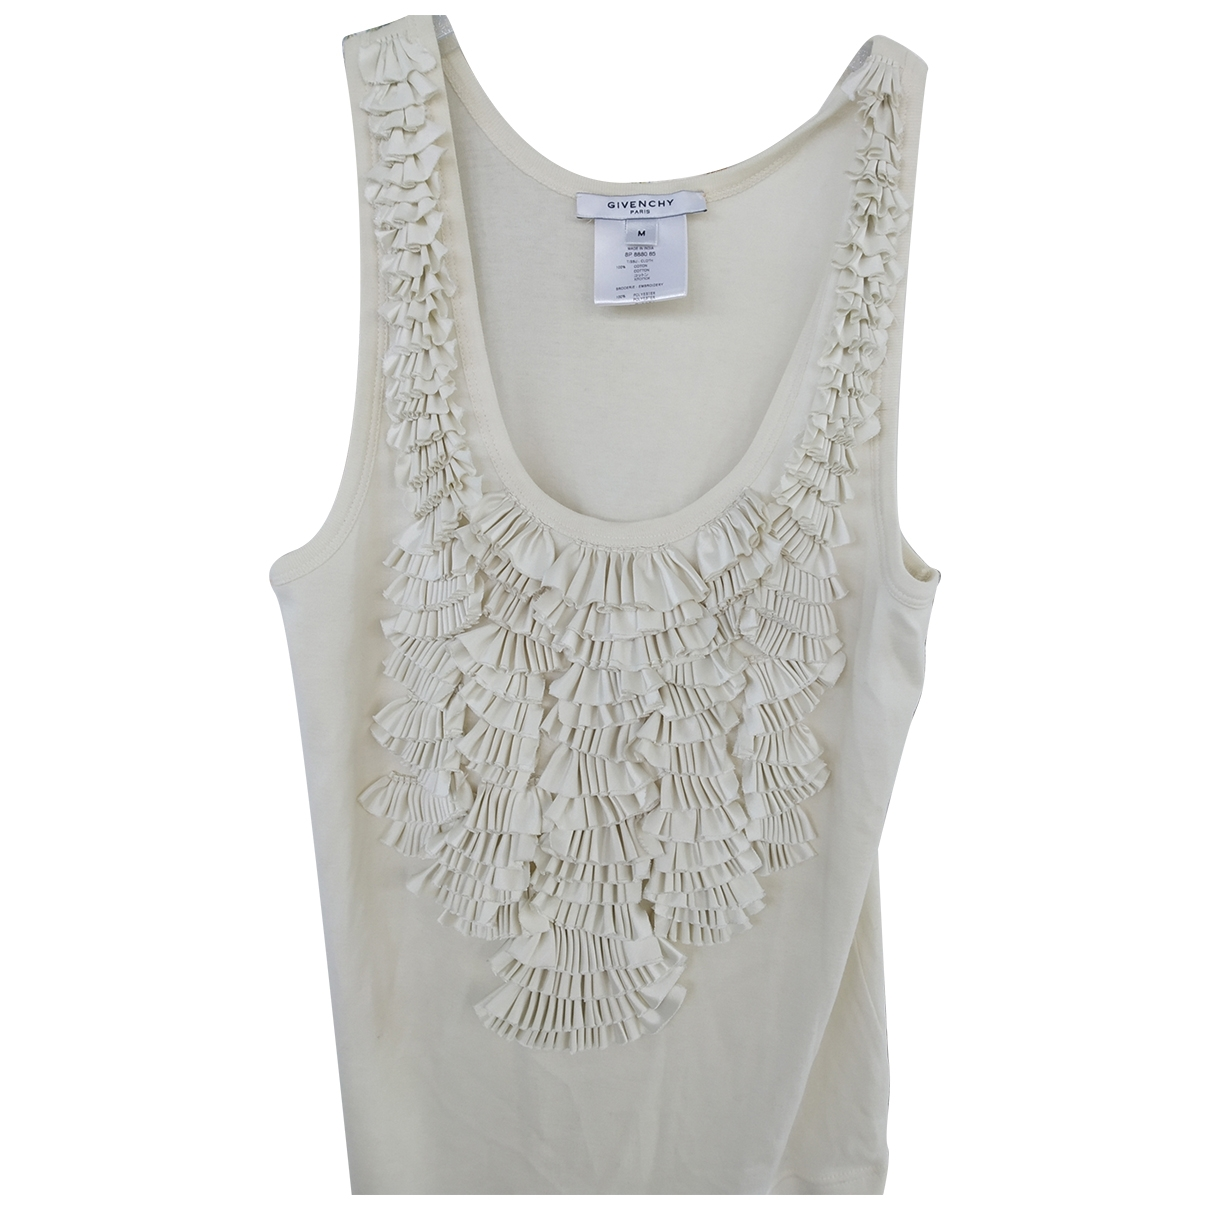 Givenchy \N White Cotton  top for Women M International